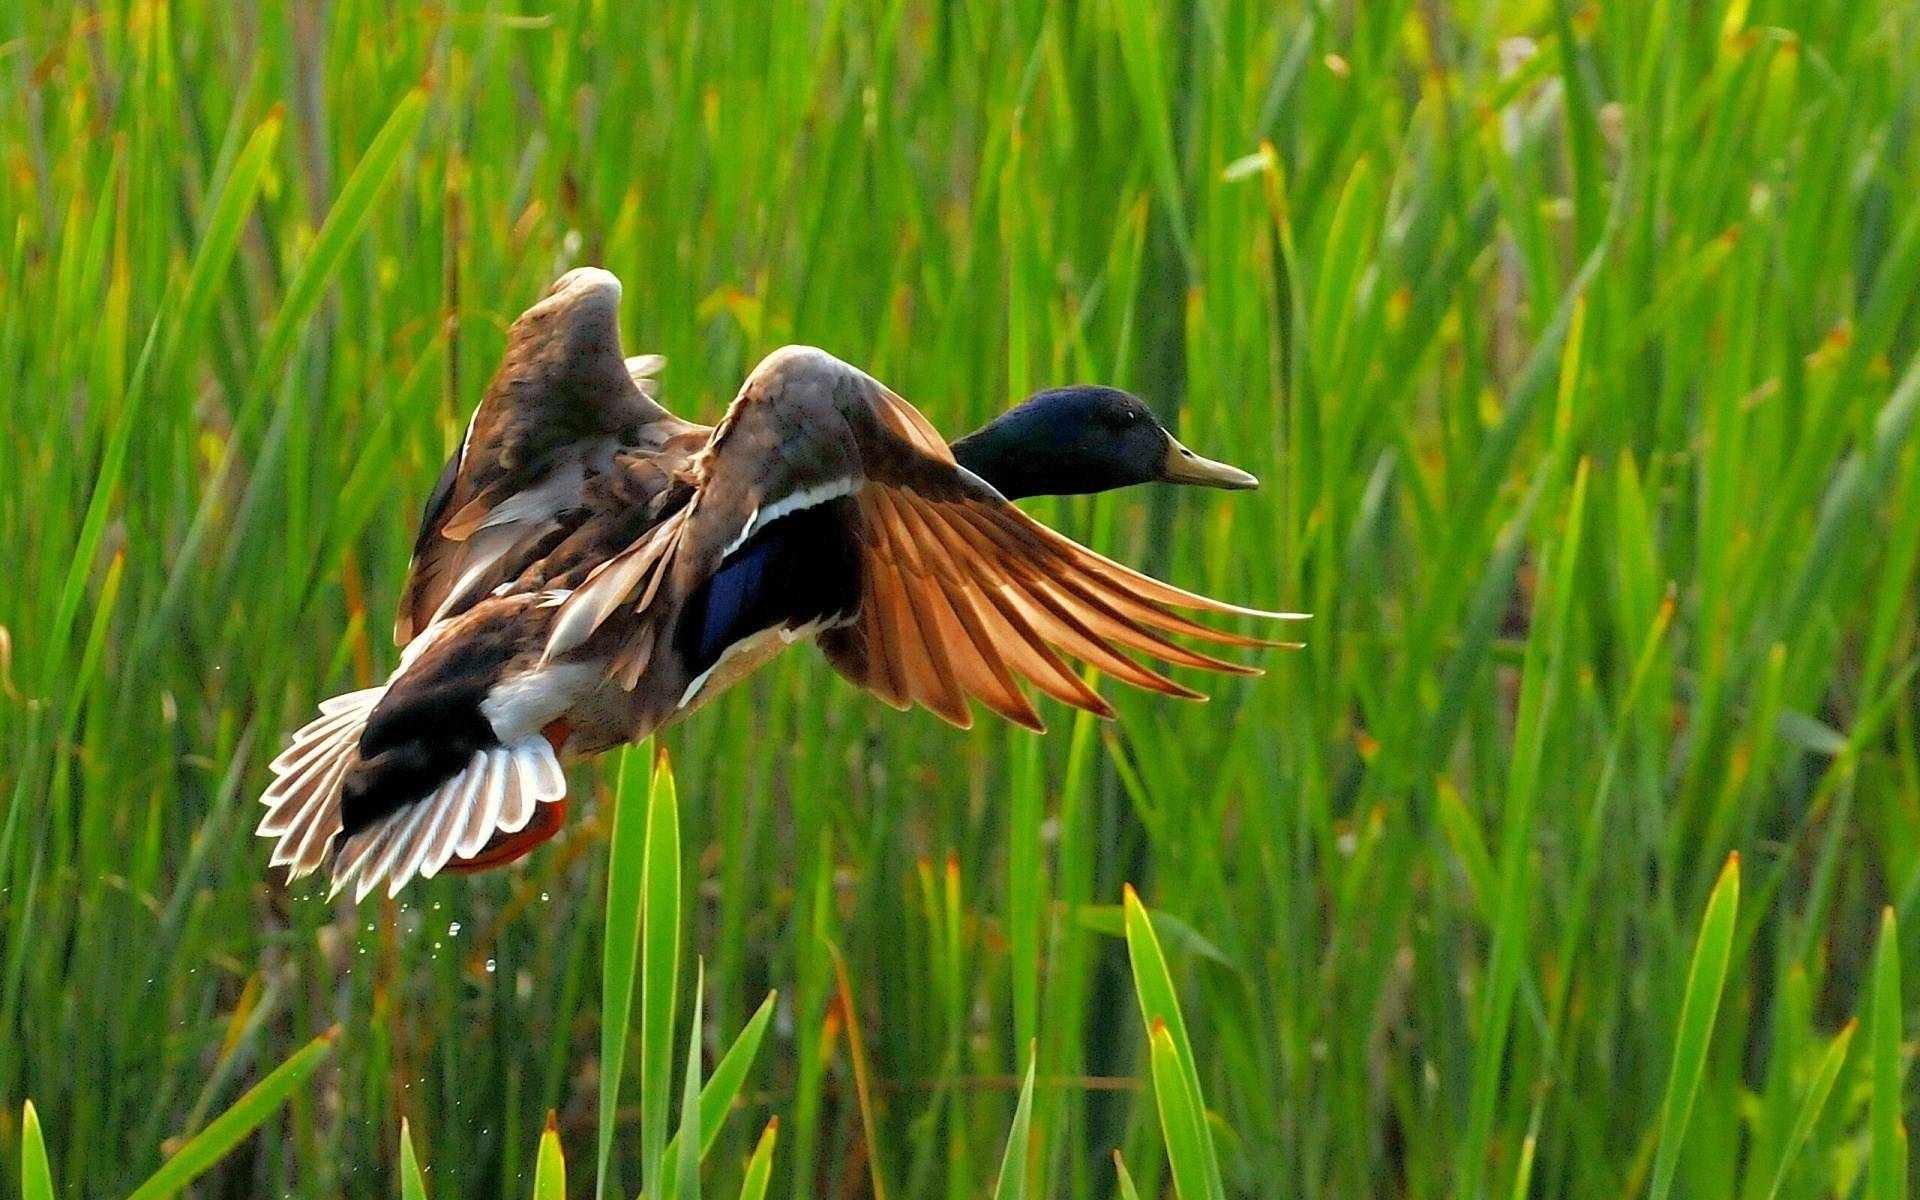 Wild duck flying   Wild Nature Wallpaper 1920x1200